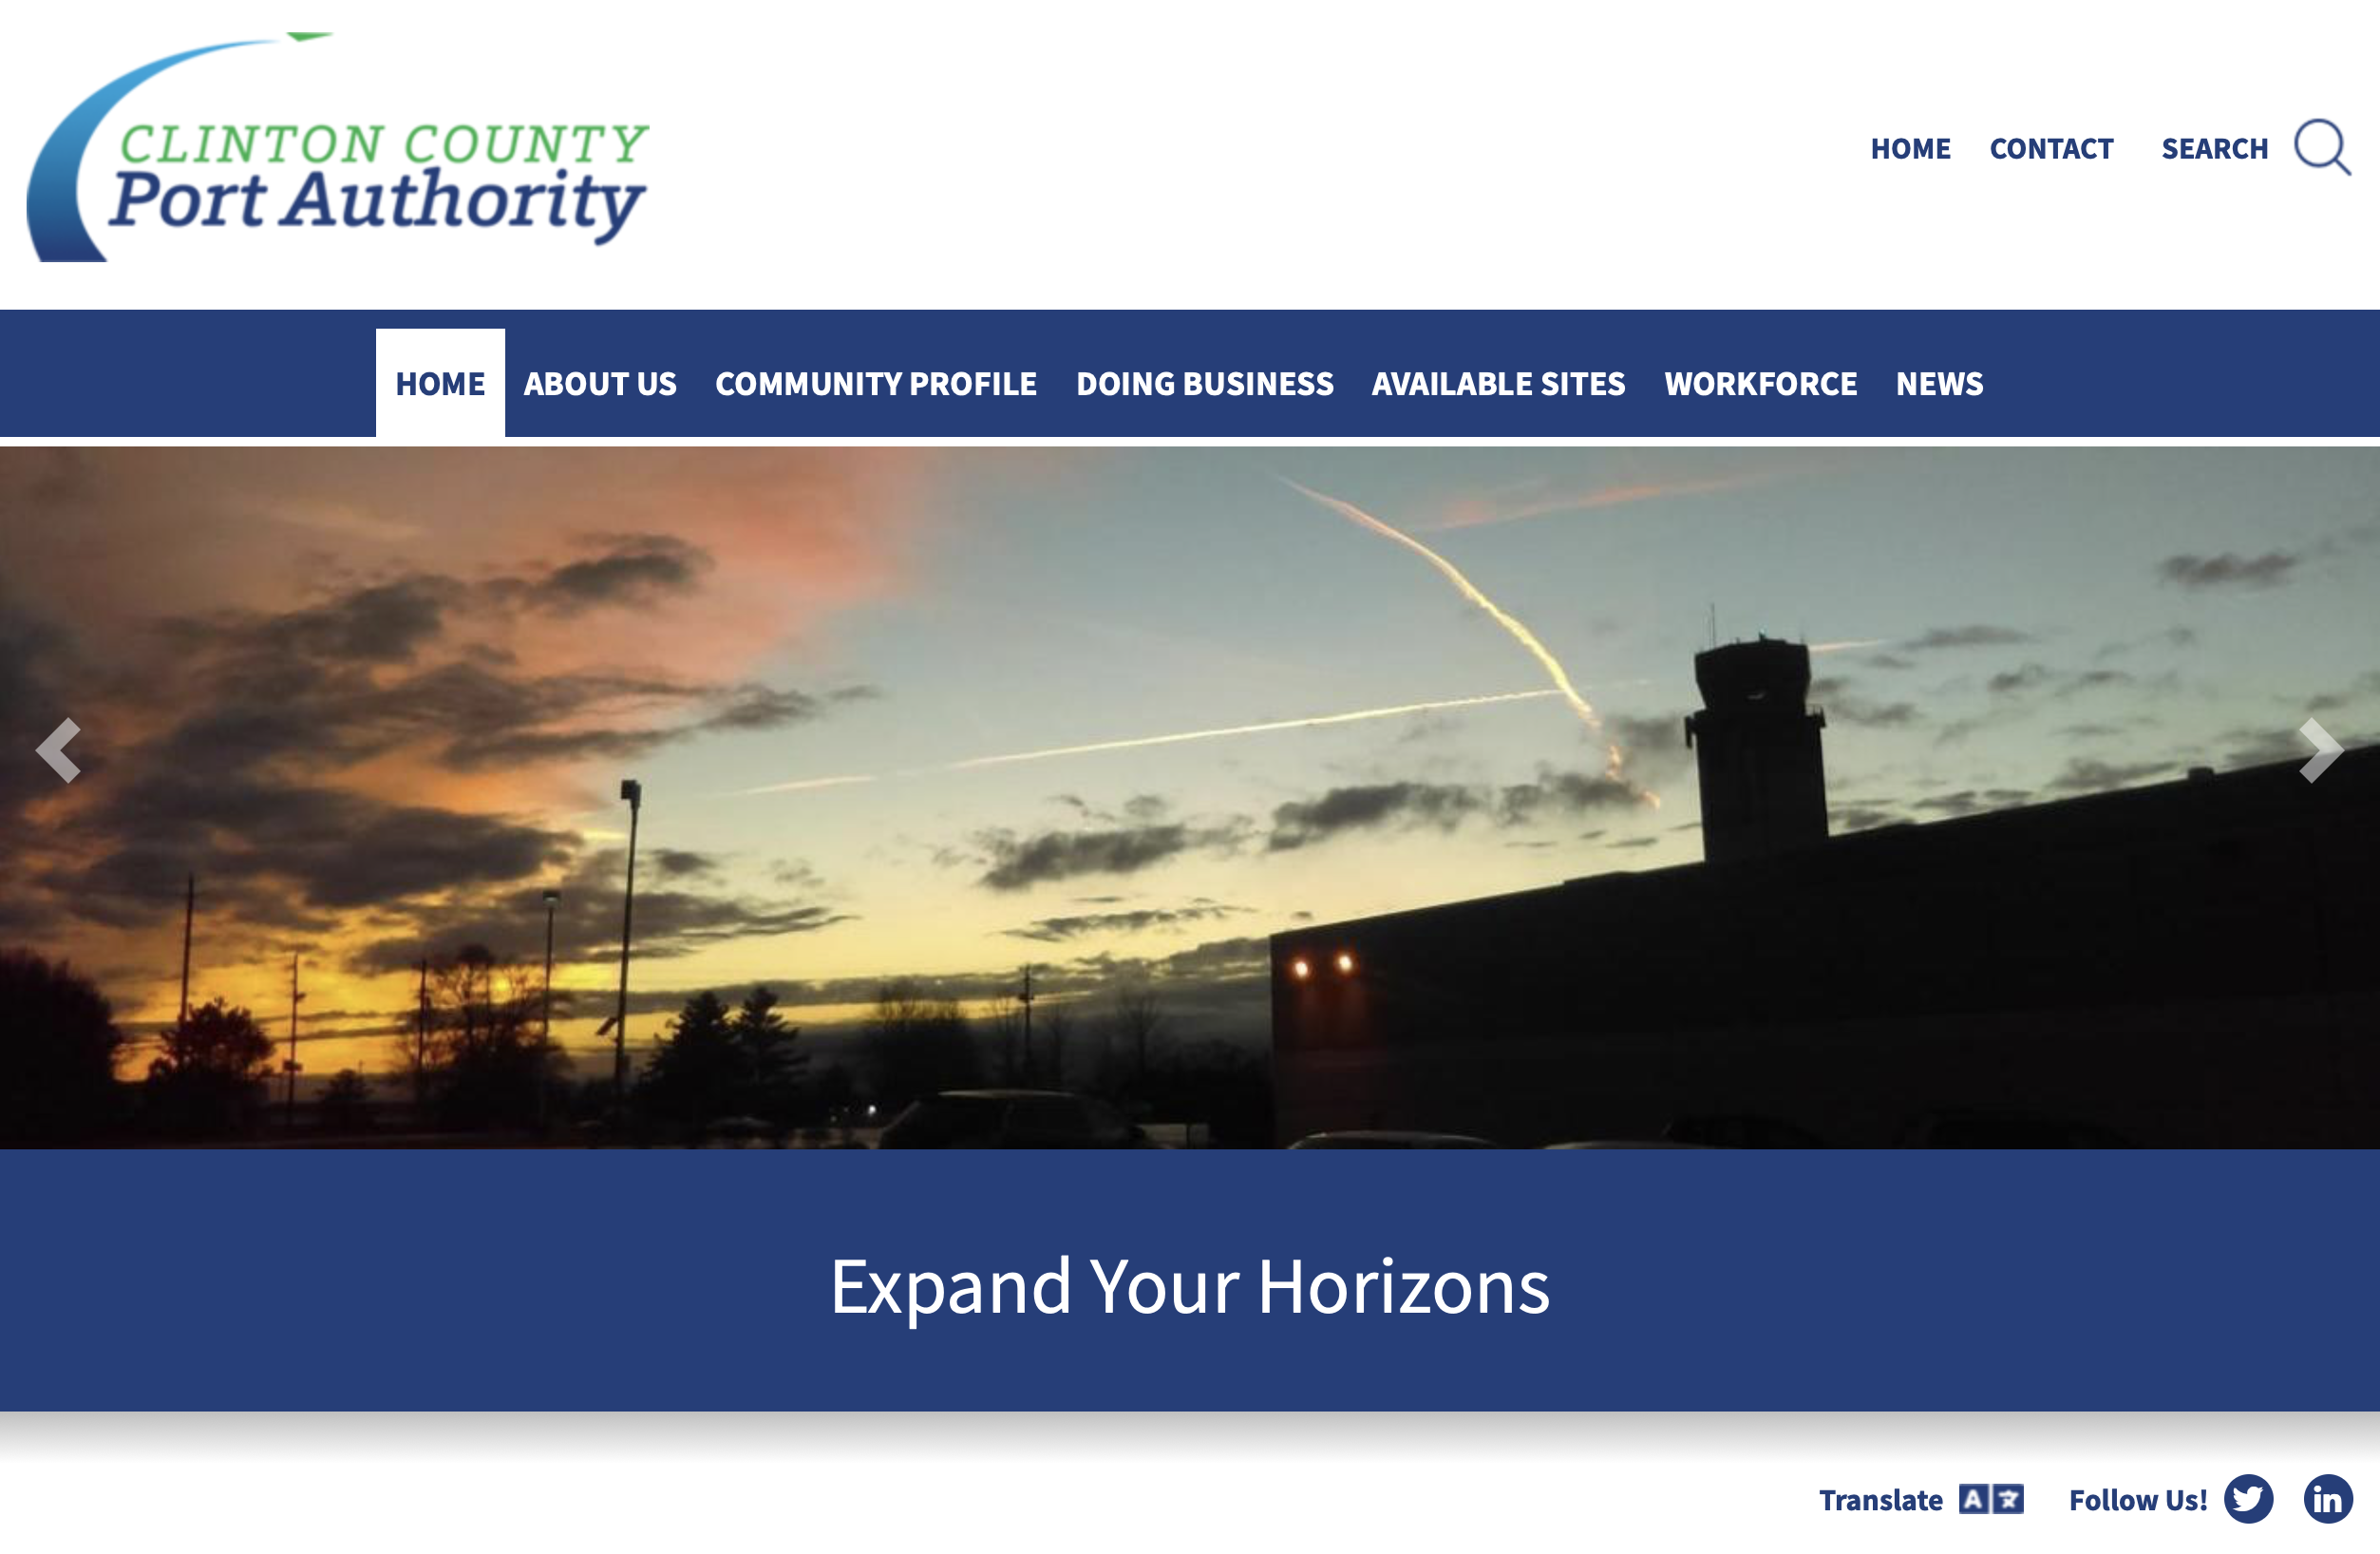 Clinton County Port Authority Launches New Website